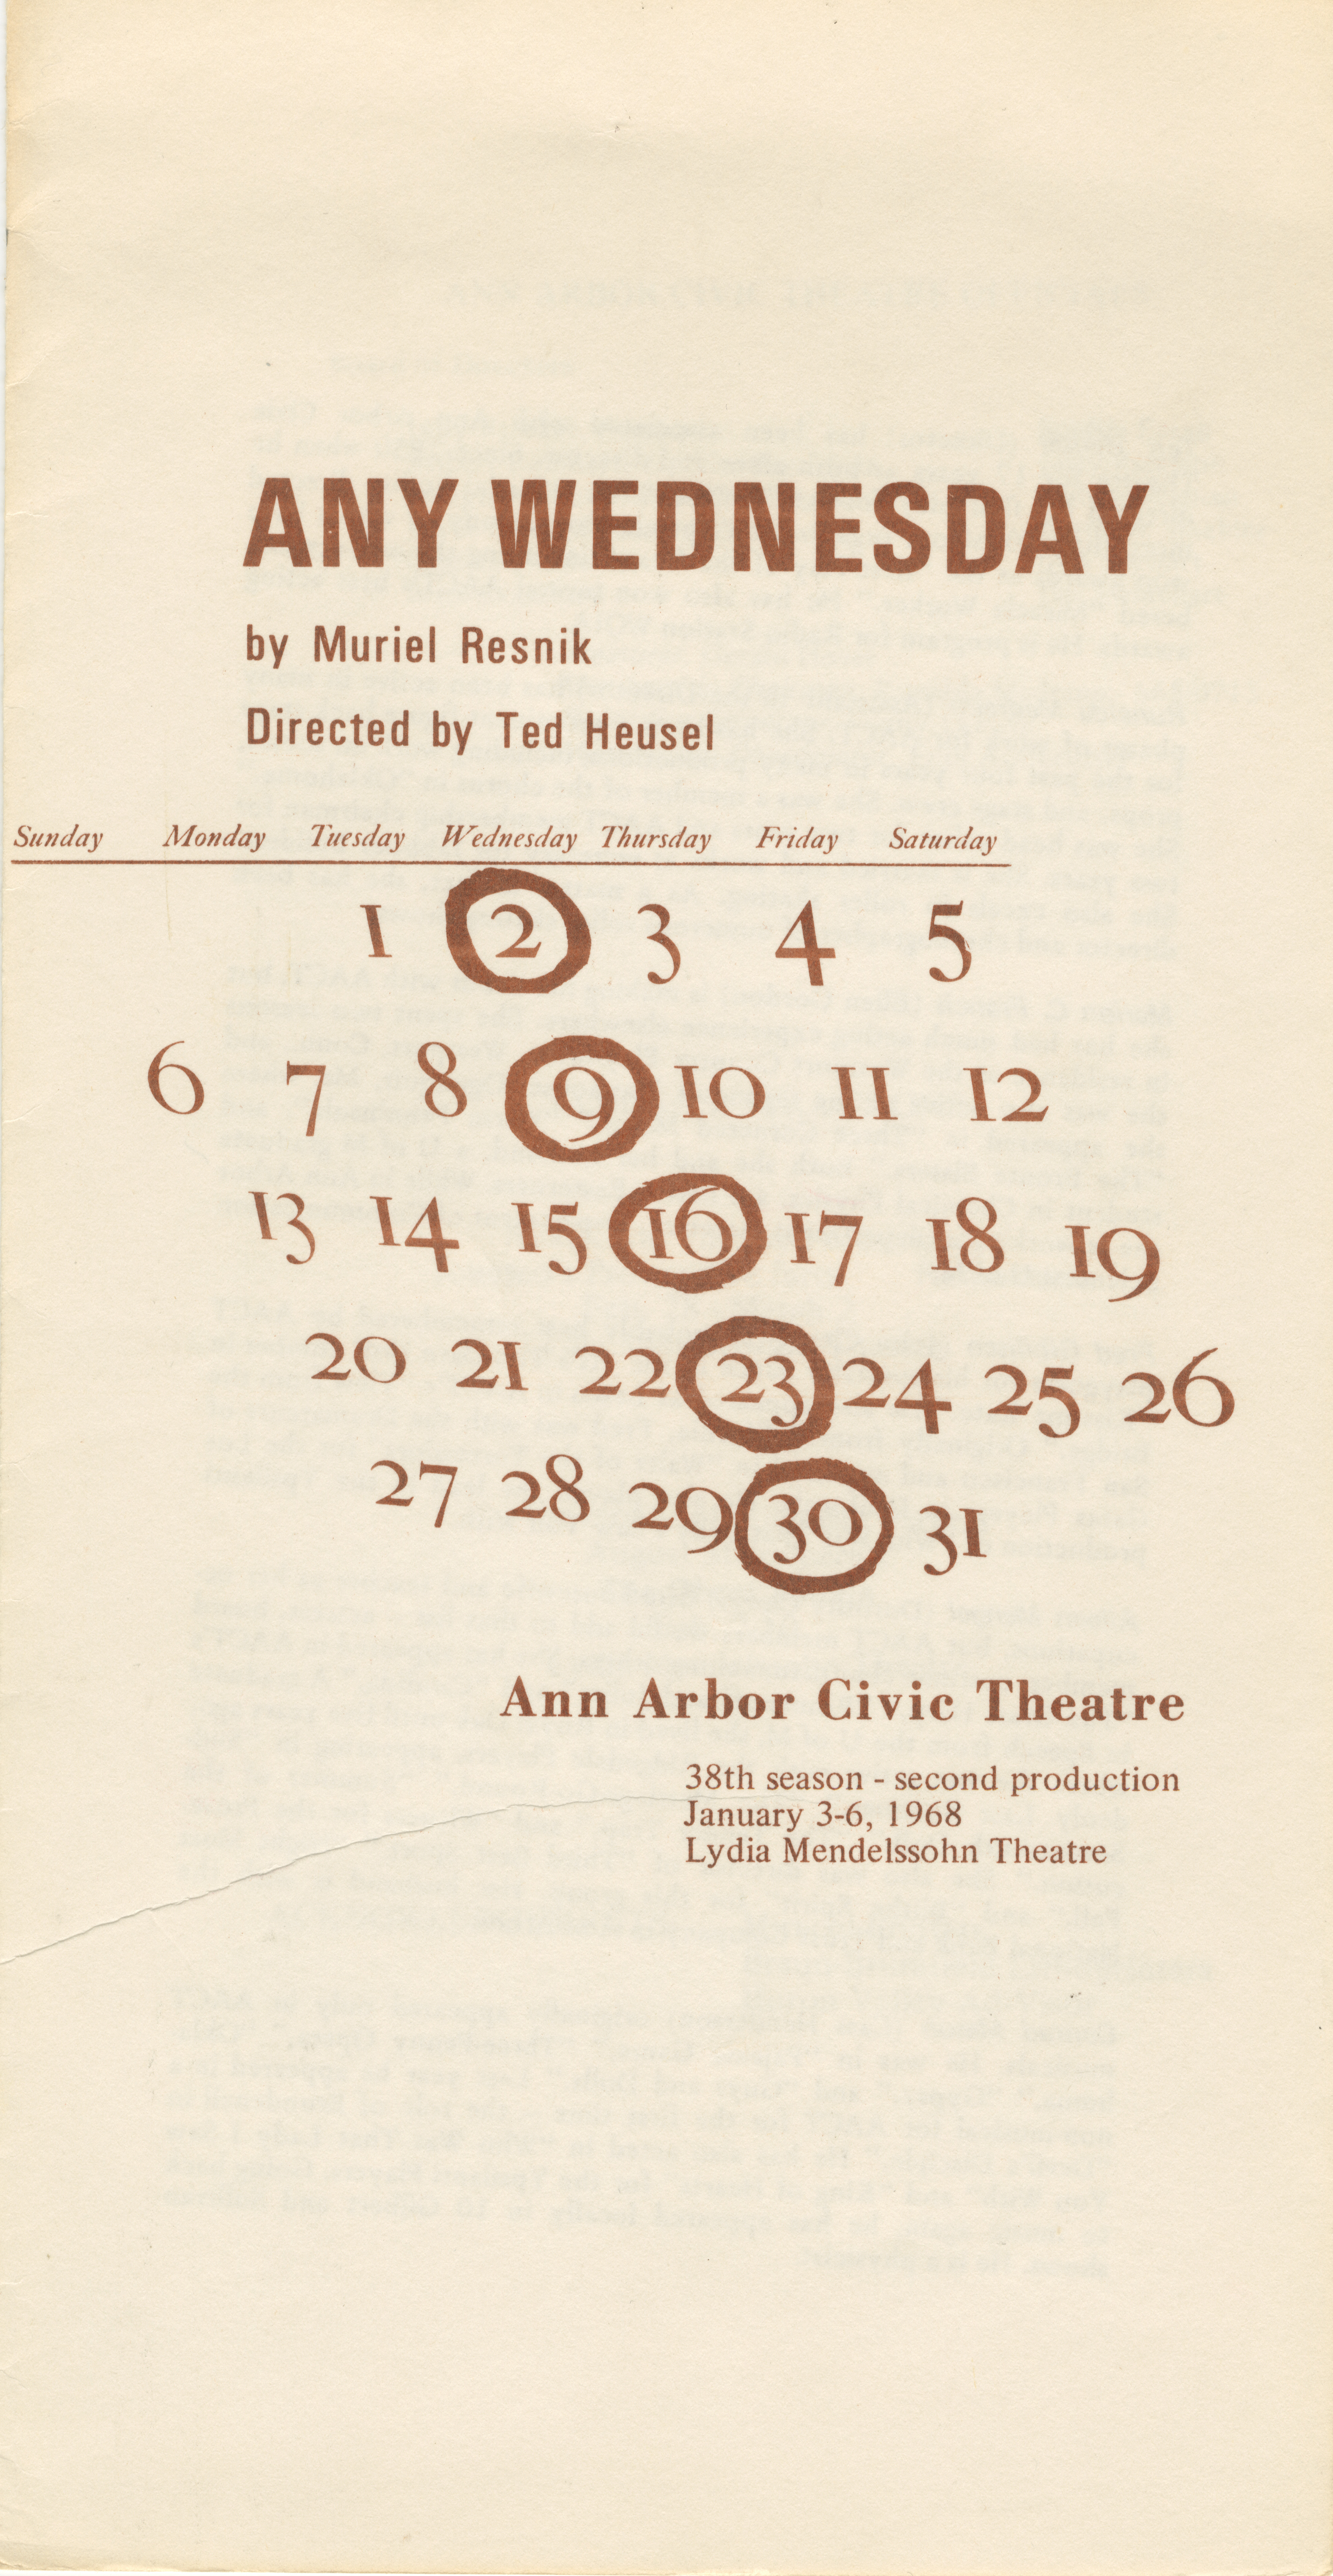 Ann Arbor Civic Theatre Program: Any Wednesday, January 03, 1968 image